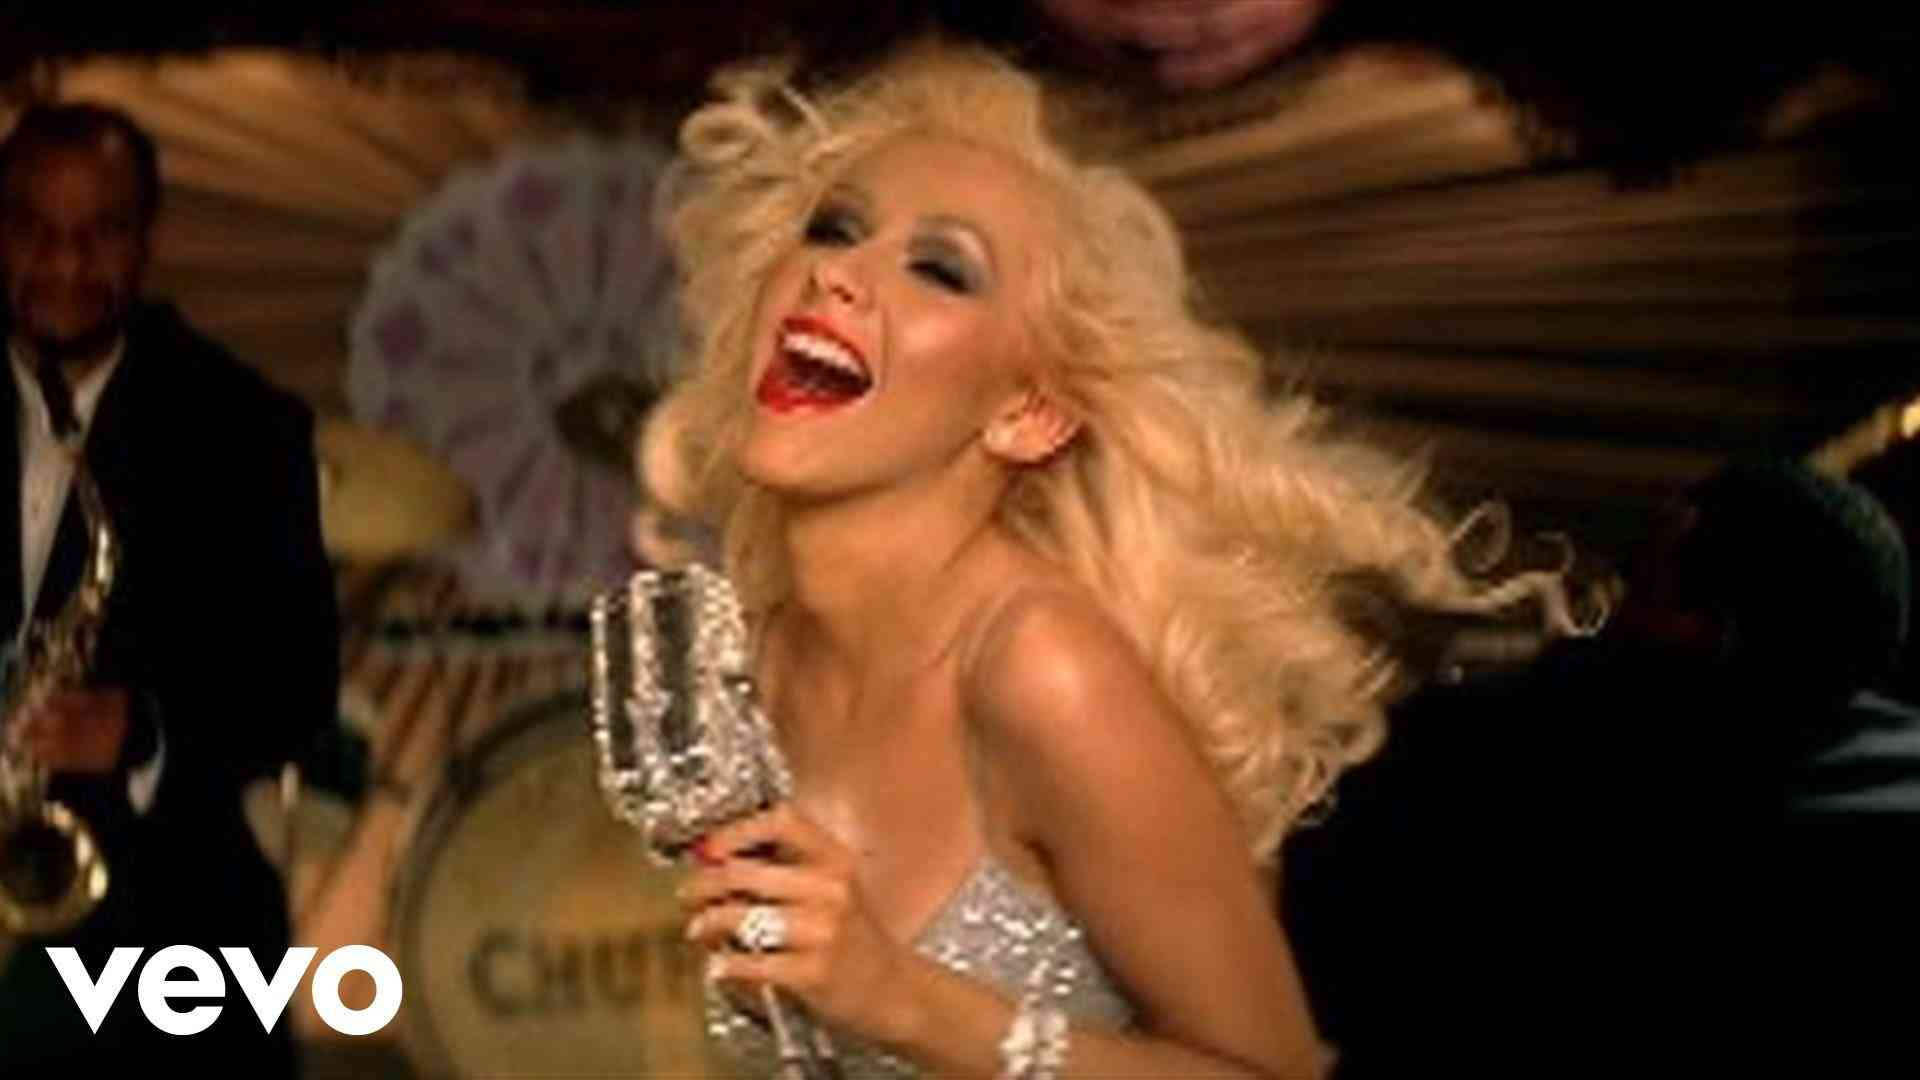 Christina Aguilera - Ain't No Other Man (Video Main) - YouTube